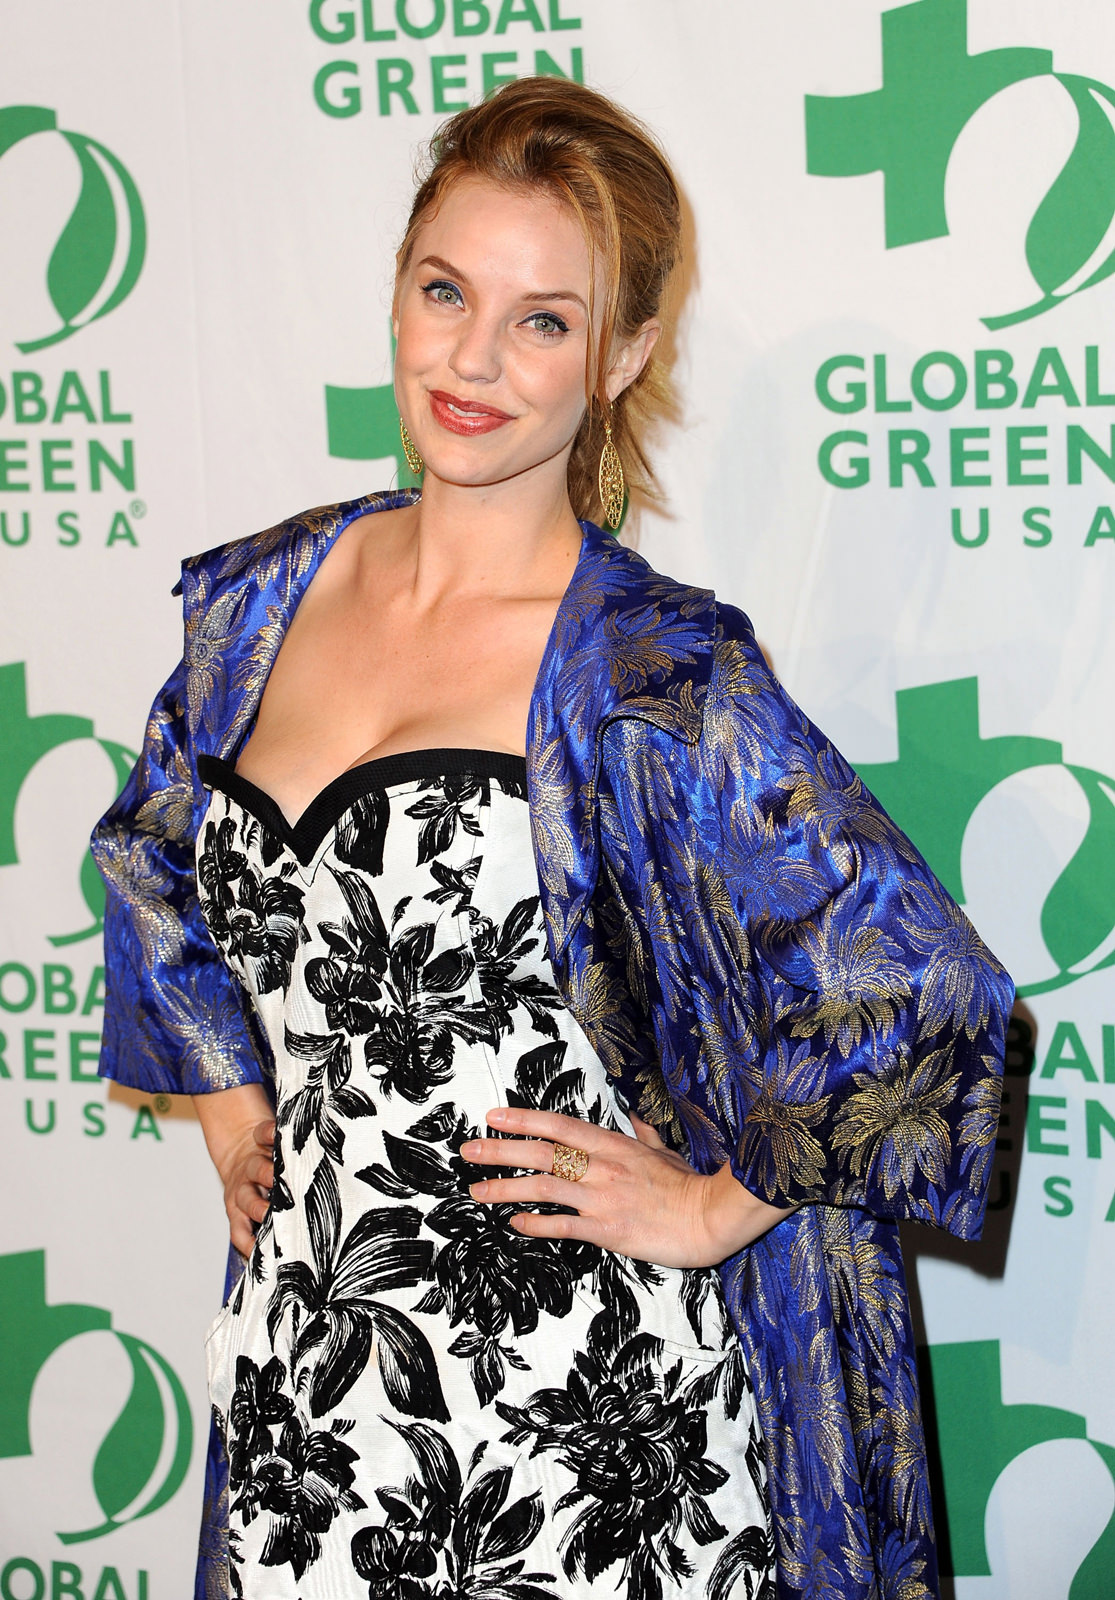 Kelli Garner Photo Gallery